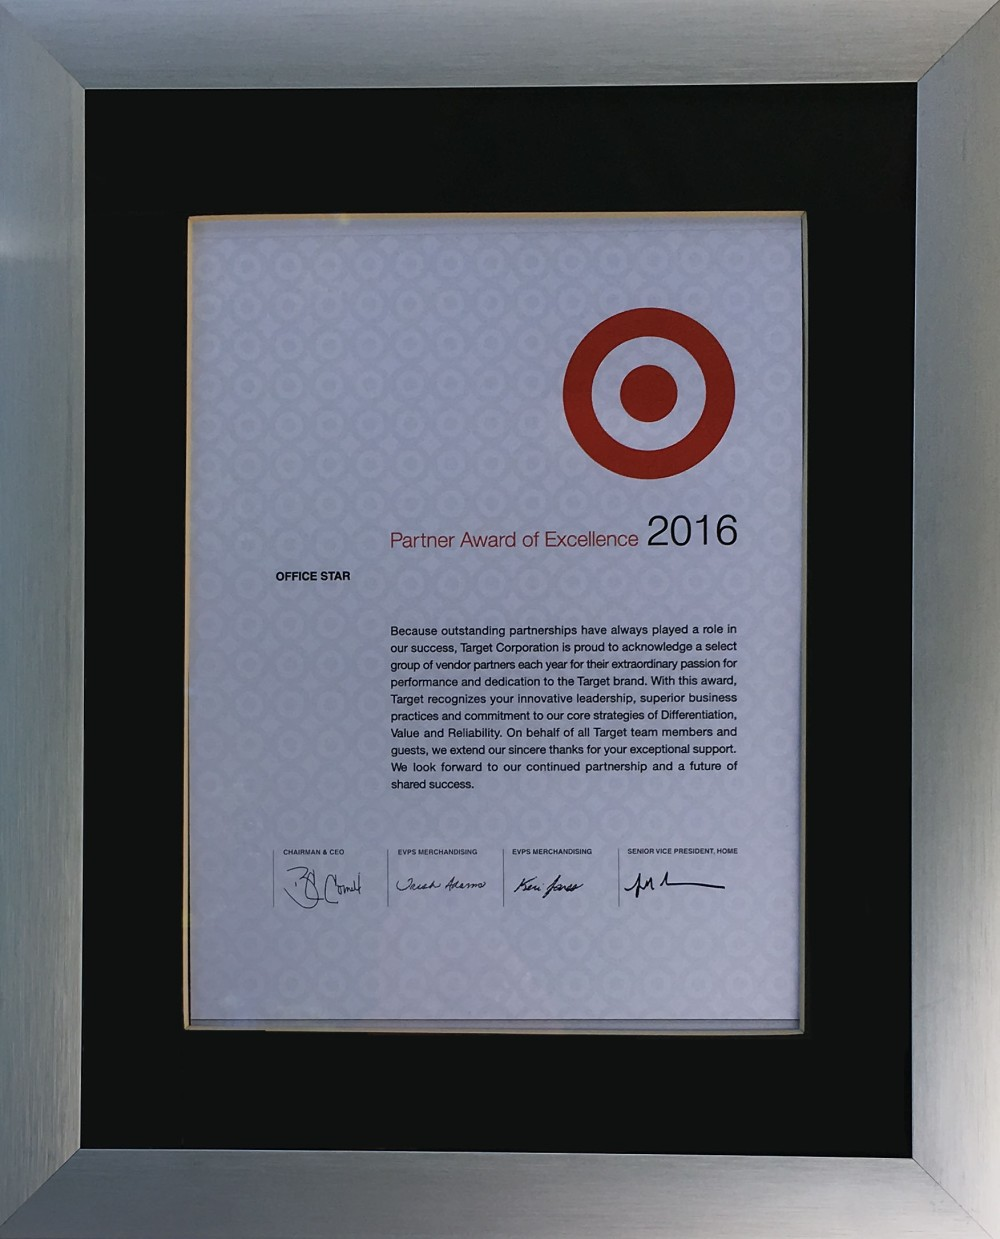 Office Star Products receives the Partner Award of Excellence 2016 from Target Corporation.